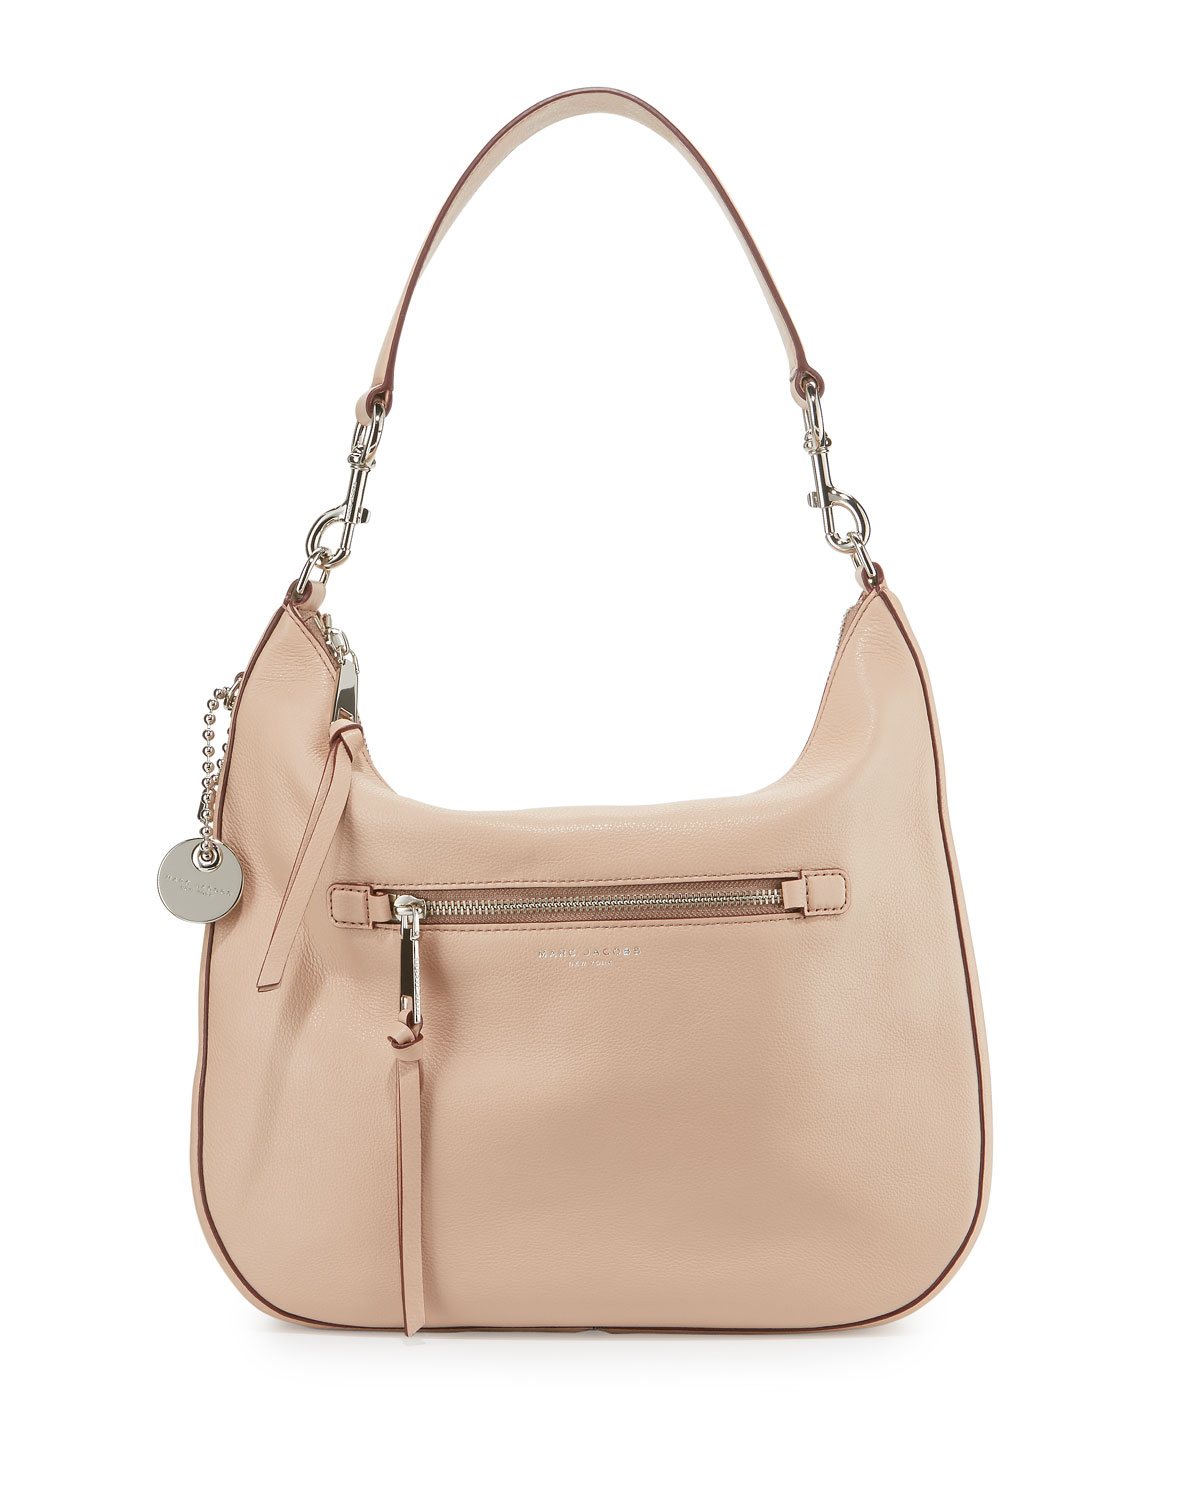 Marc Jacobs Recruit Leather Hobo Bag, Nude   Neiman Marcus ca94c90365